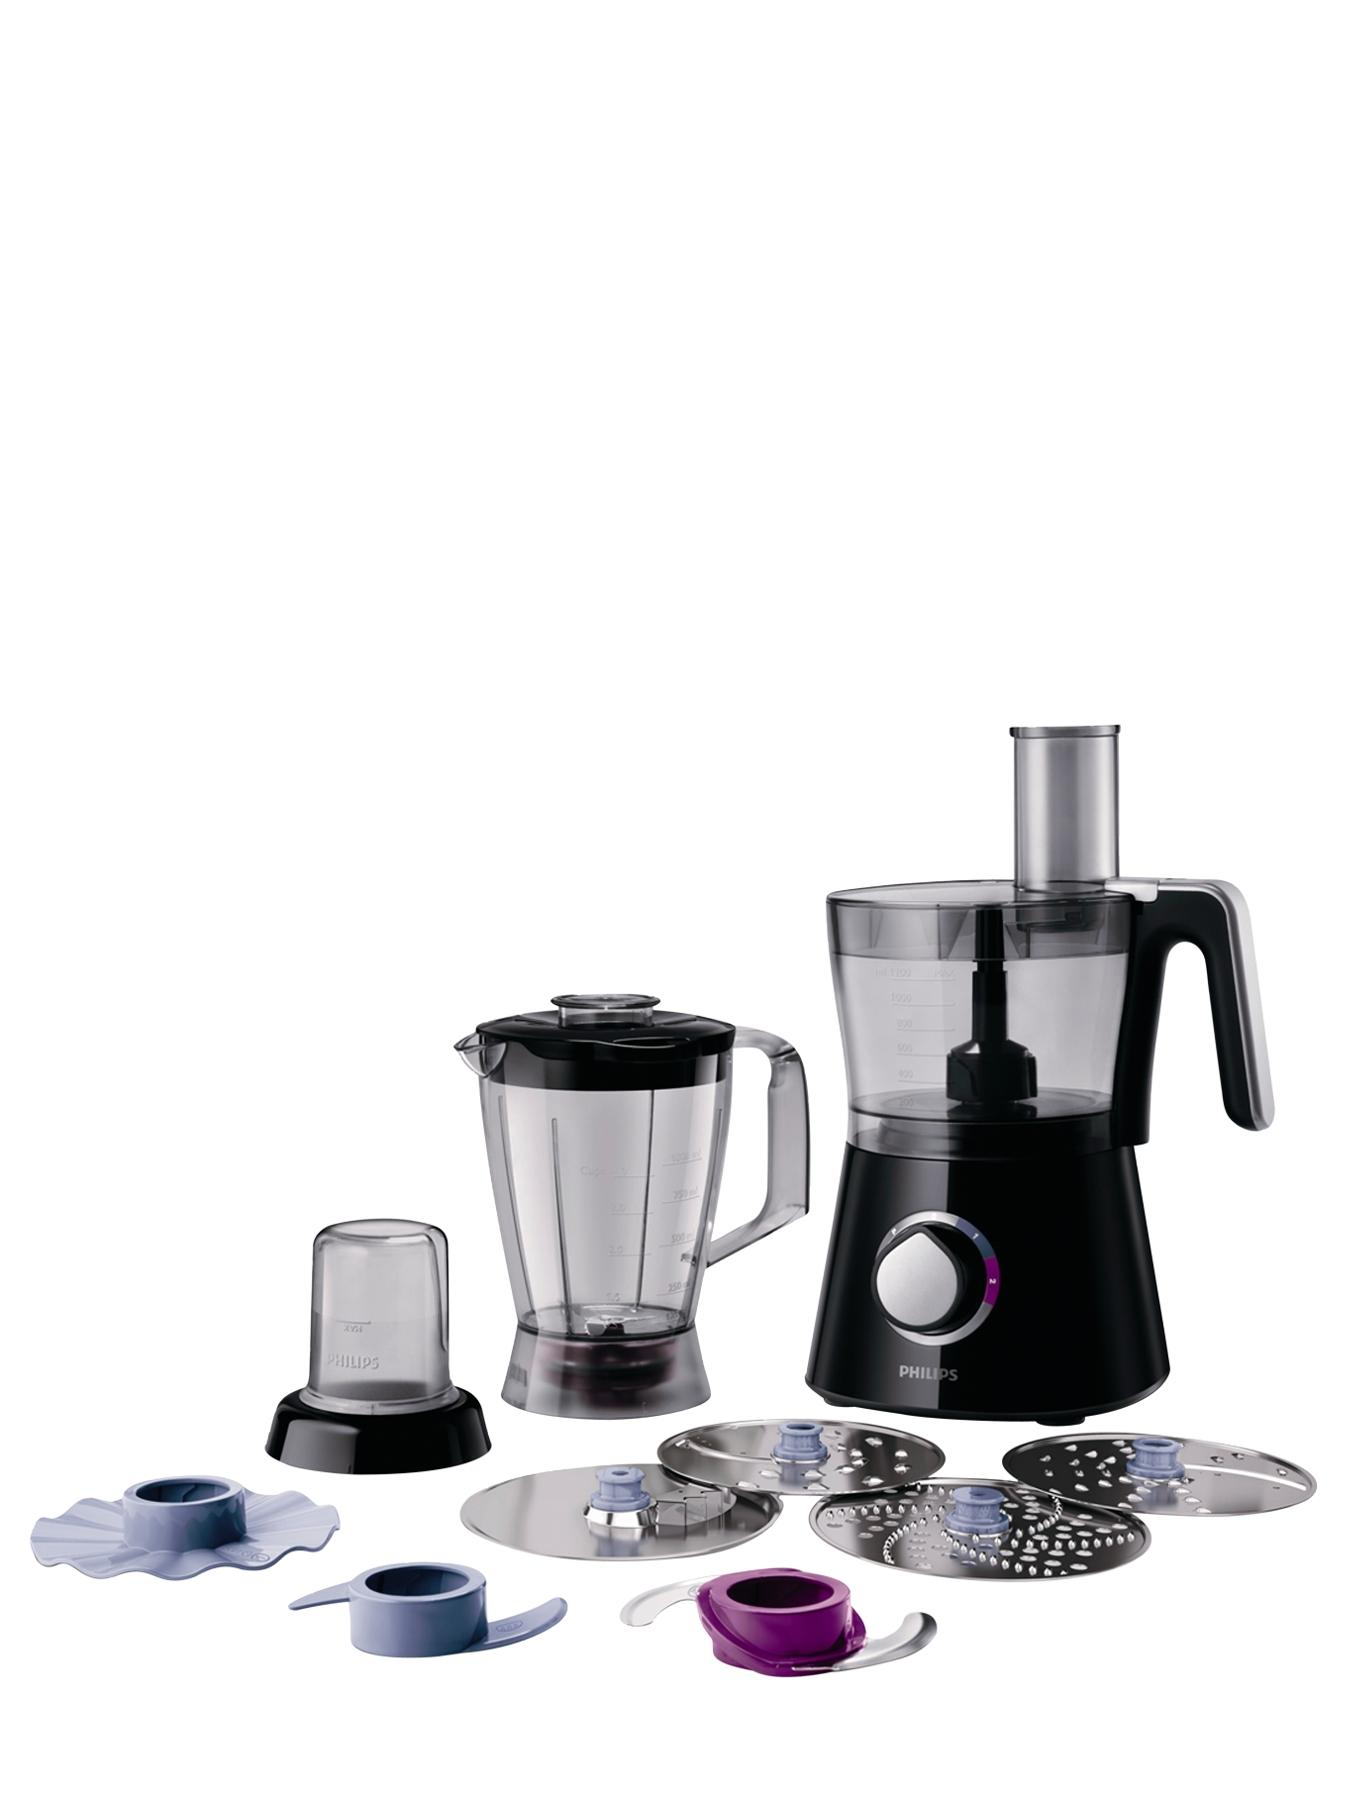 HR7762 Viva Collection Food Processor - Black